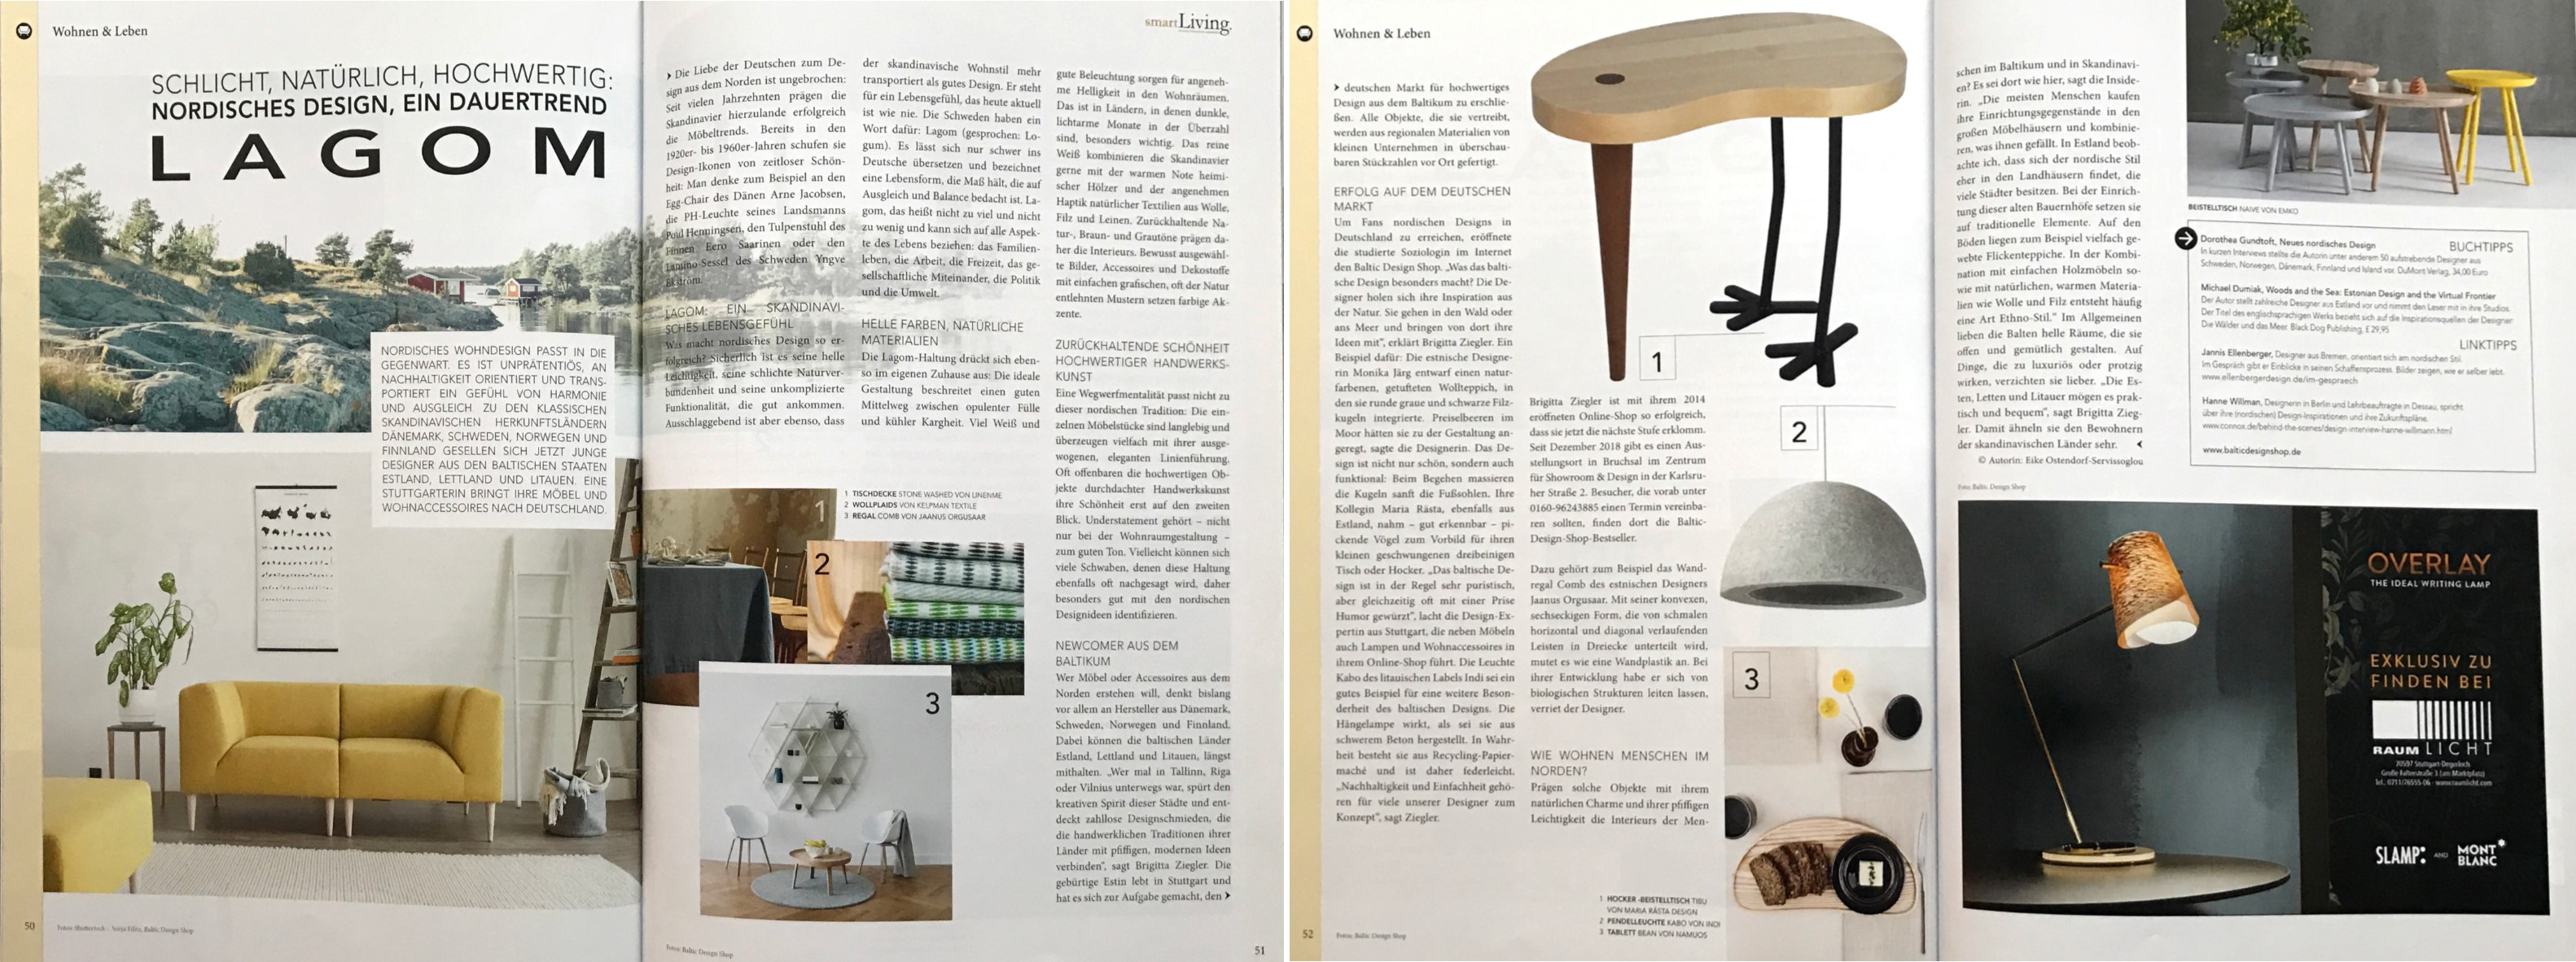 Baltic Design Shop Smart Living Magazin